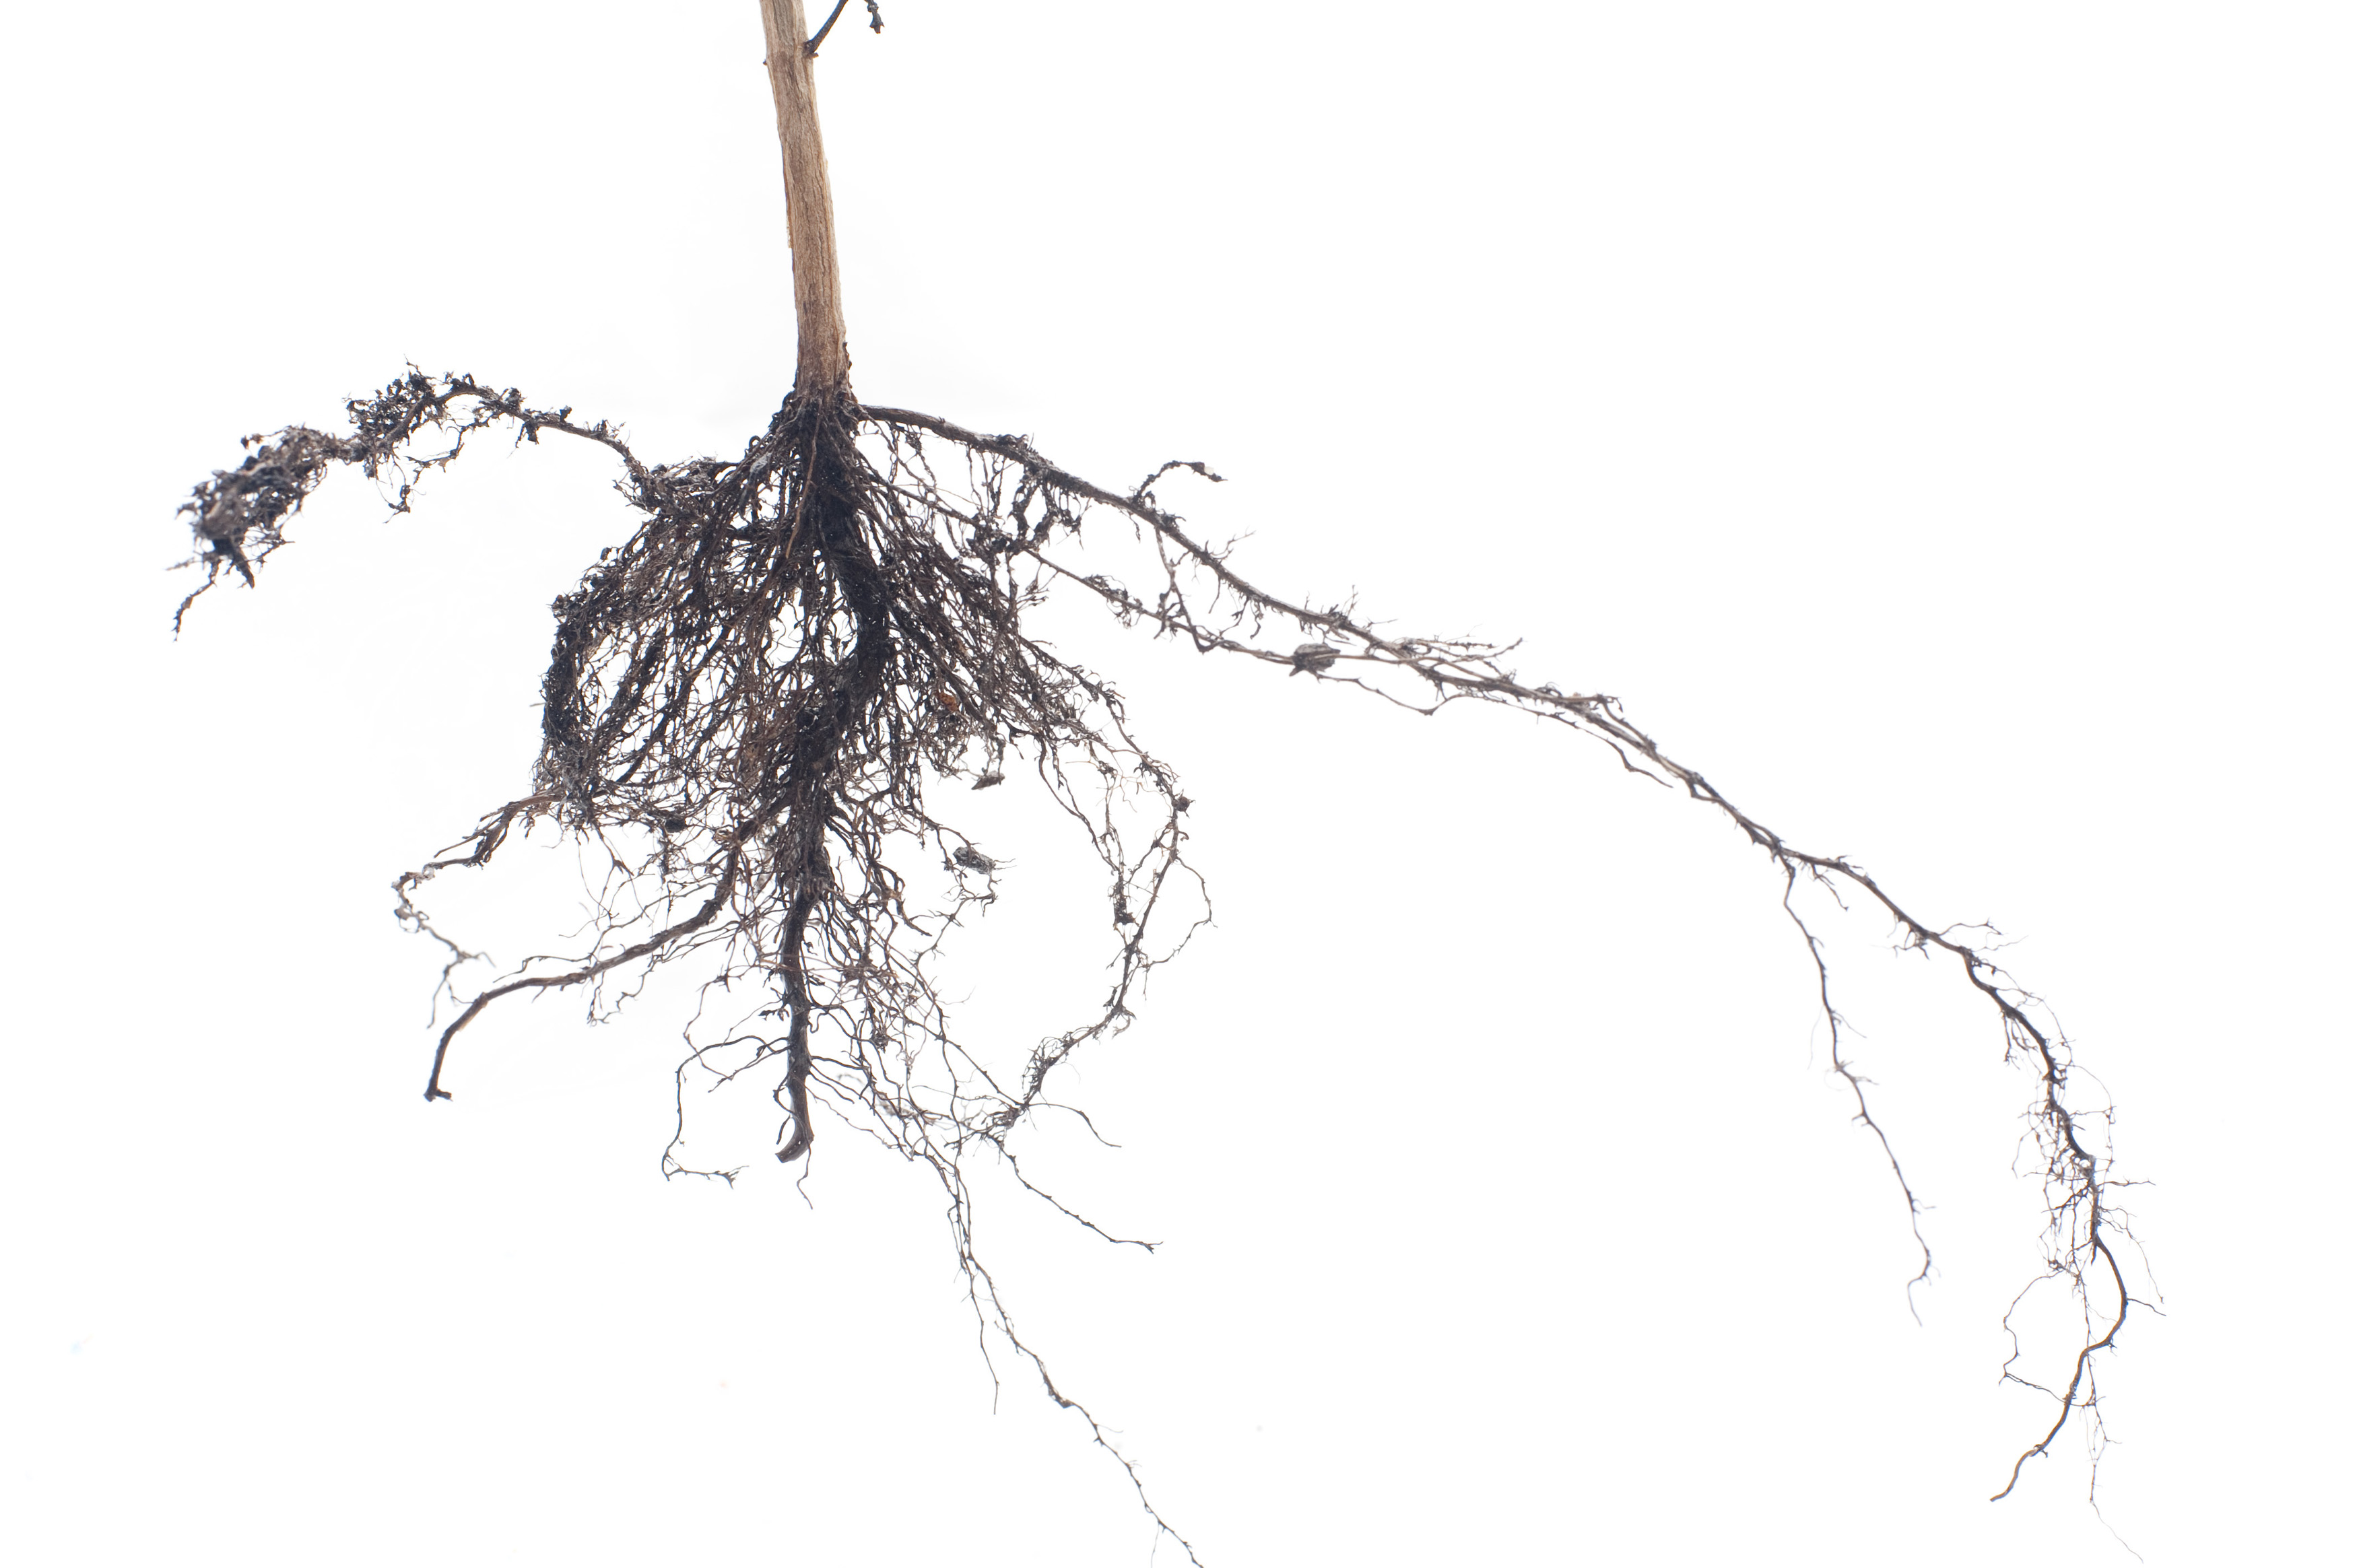 Fibrous root system on a plant held up against a white background showing the finely branching roots for absorbing moisture and nutrients